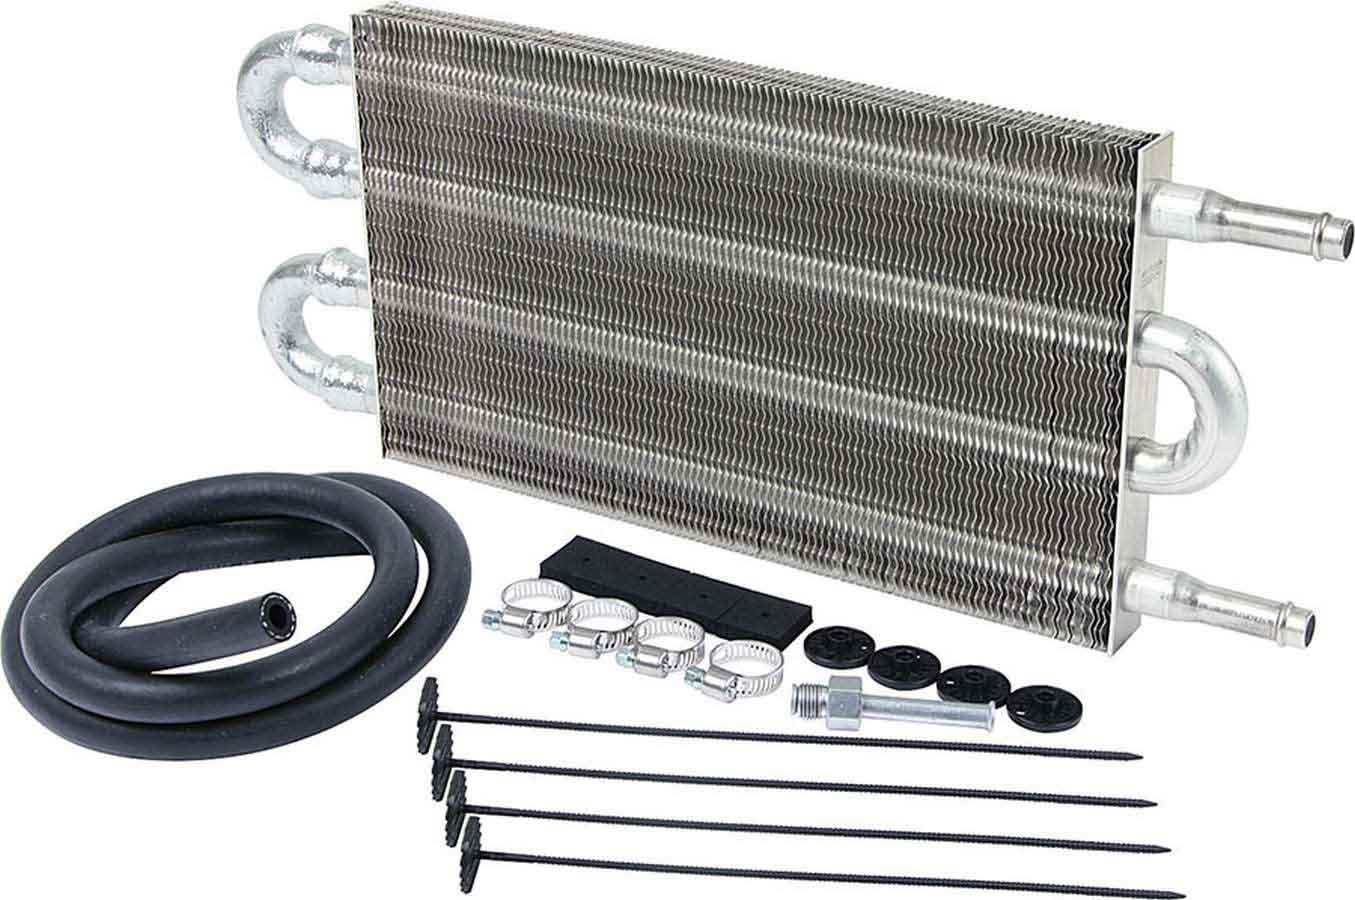 Allstar Performance 26700 Fluid Cooler, 9 x 5 x 3/4 in, Tube Type, 3/8 in Hose Barb Inlet / Outlet, Fitting / Hardware / Hose, Aluminum, Automatic Transmission, Kit